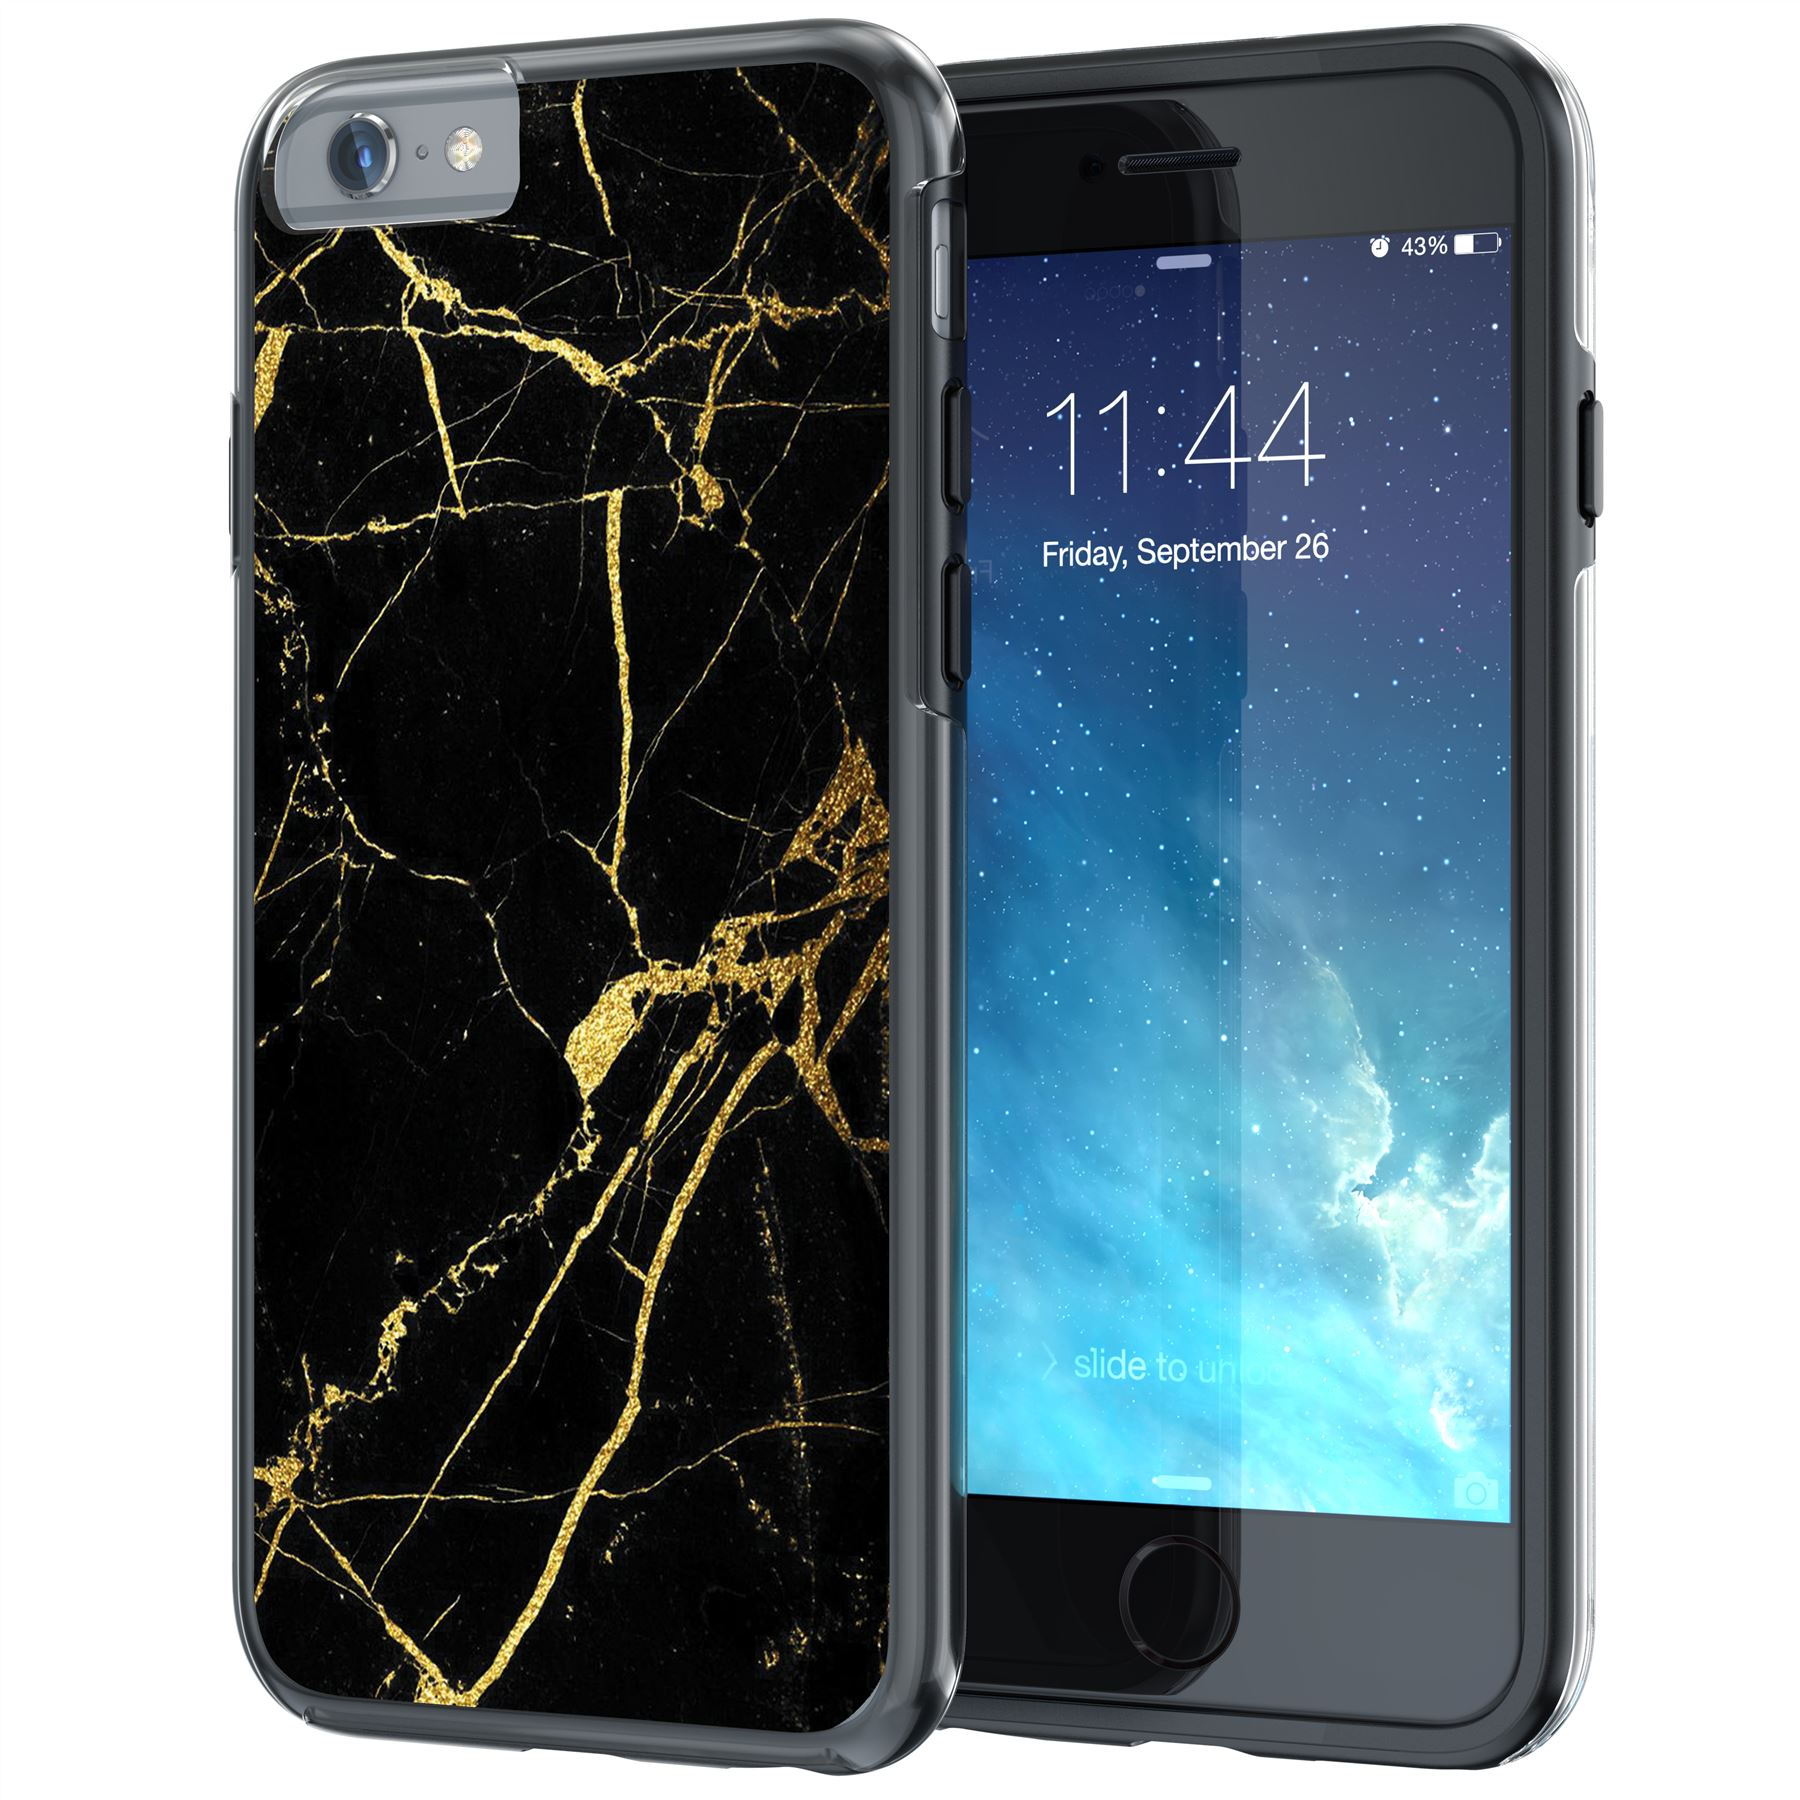 "iPhone 6 Plus Case, iPhone 6s Plus 5.5"" Case, True Color® Black & Gold Marble [Stone Texture Collection] Slim Hybrid Hard Back + Soft TPU Bumper Protective Durable Cover [True Impact Series]"